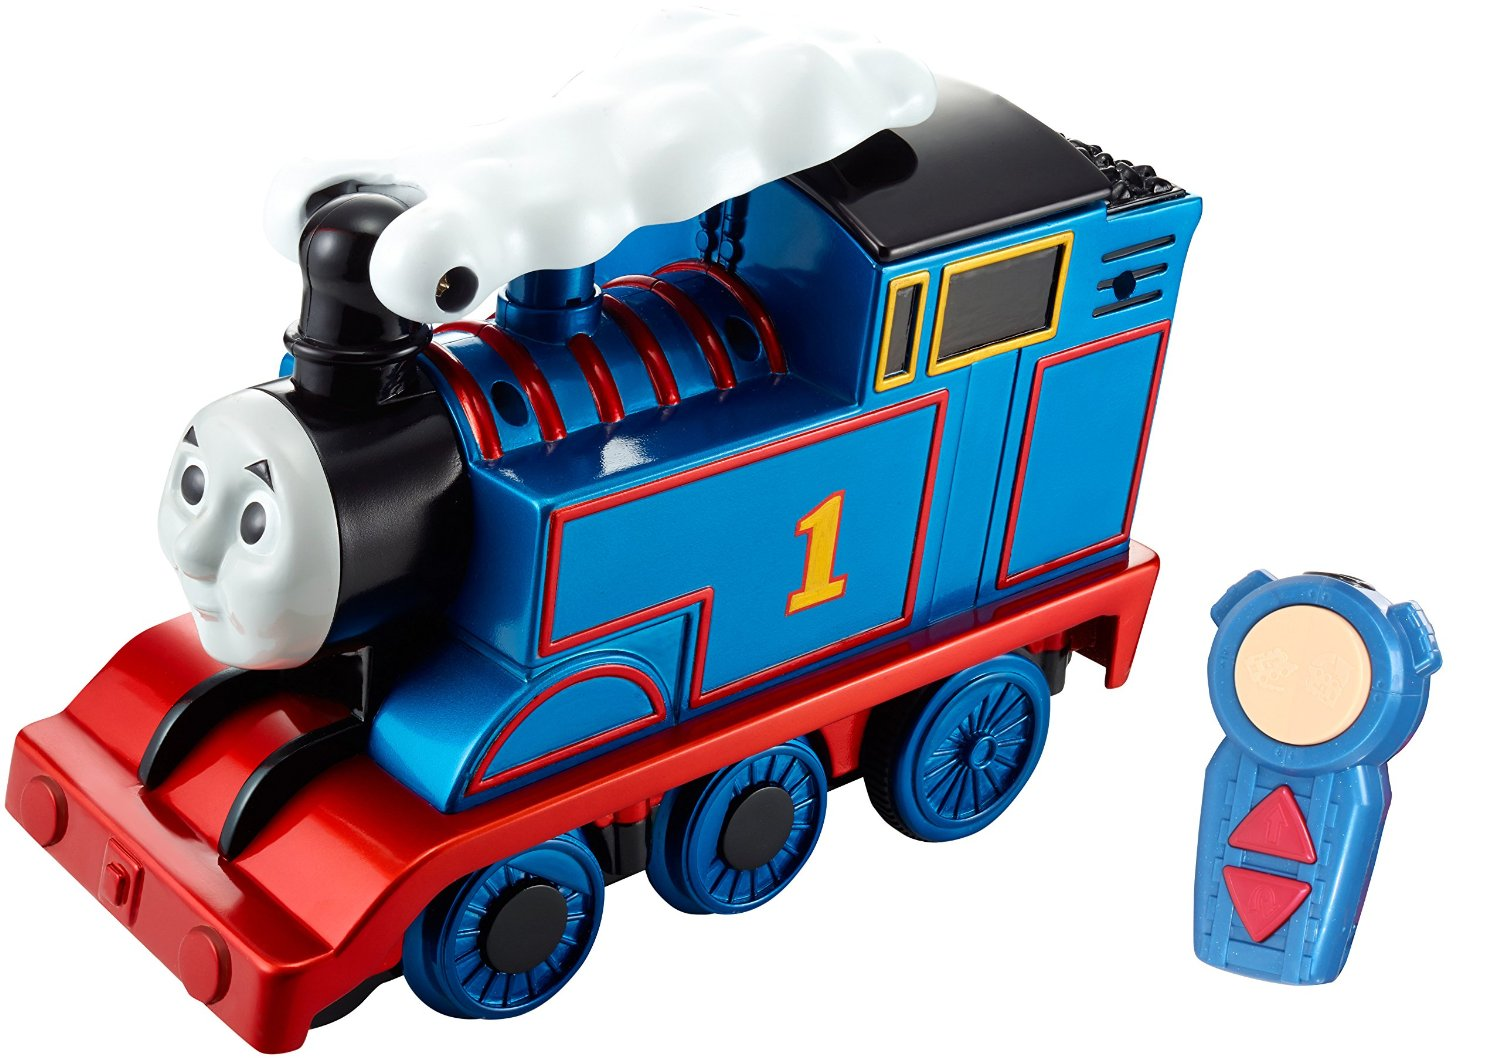 Best Thomas The Train Toys - Tank Engine & More